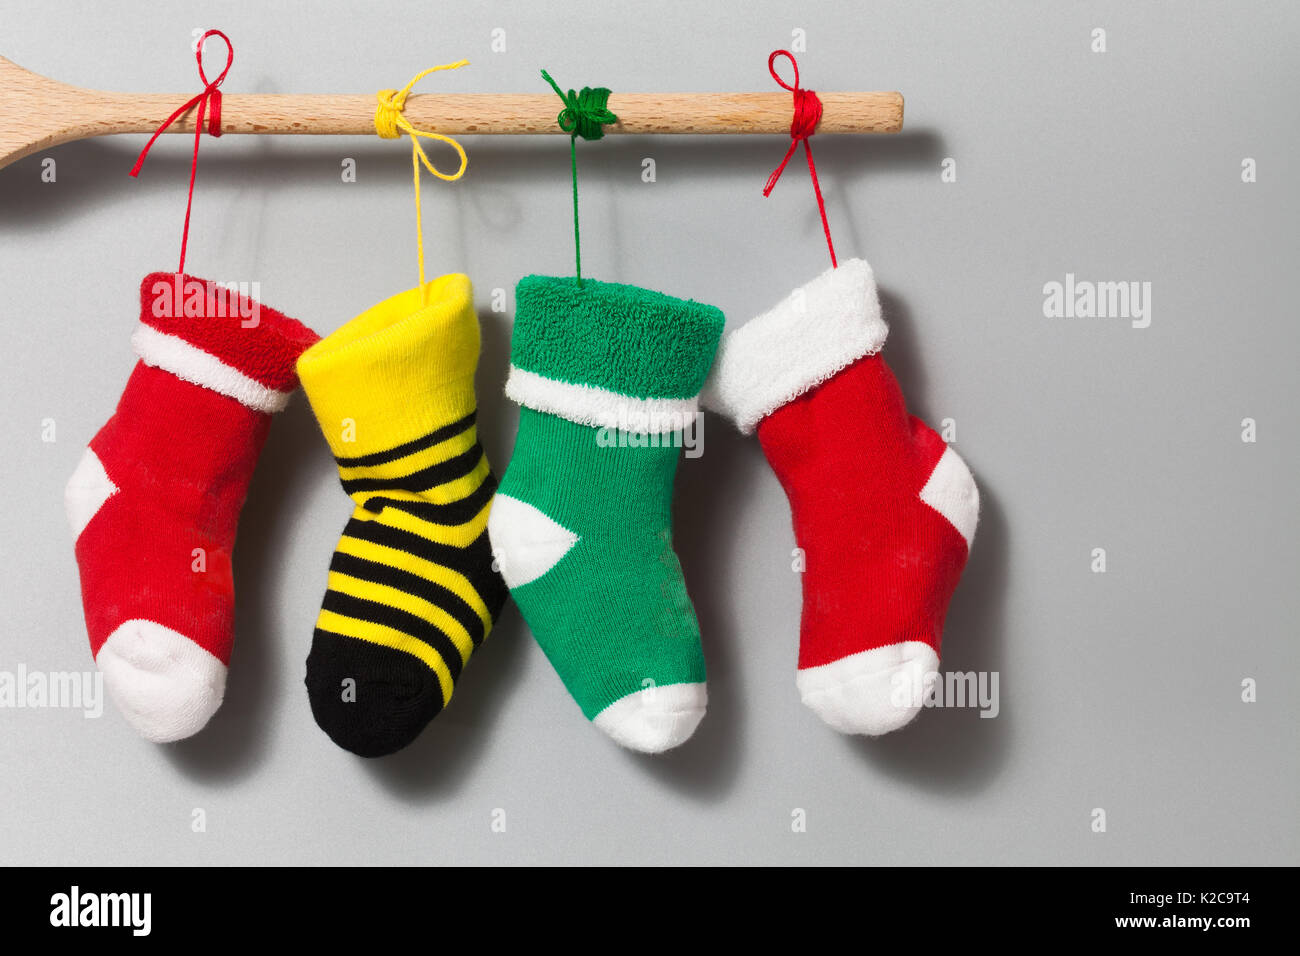 Merry xmas text invitation card hanging christmas socks on gray merry xmas text invitation card hanging christmas socks on gray beige background colorful stocking decoration poster wooden plank and colored ropes stopboris Image collections